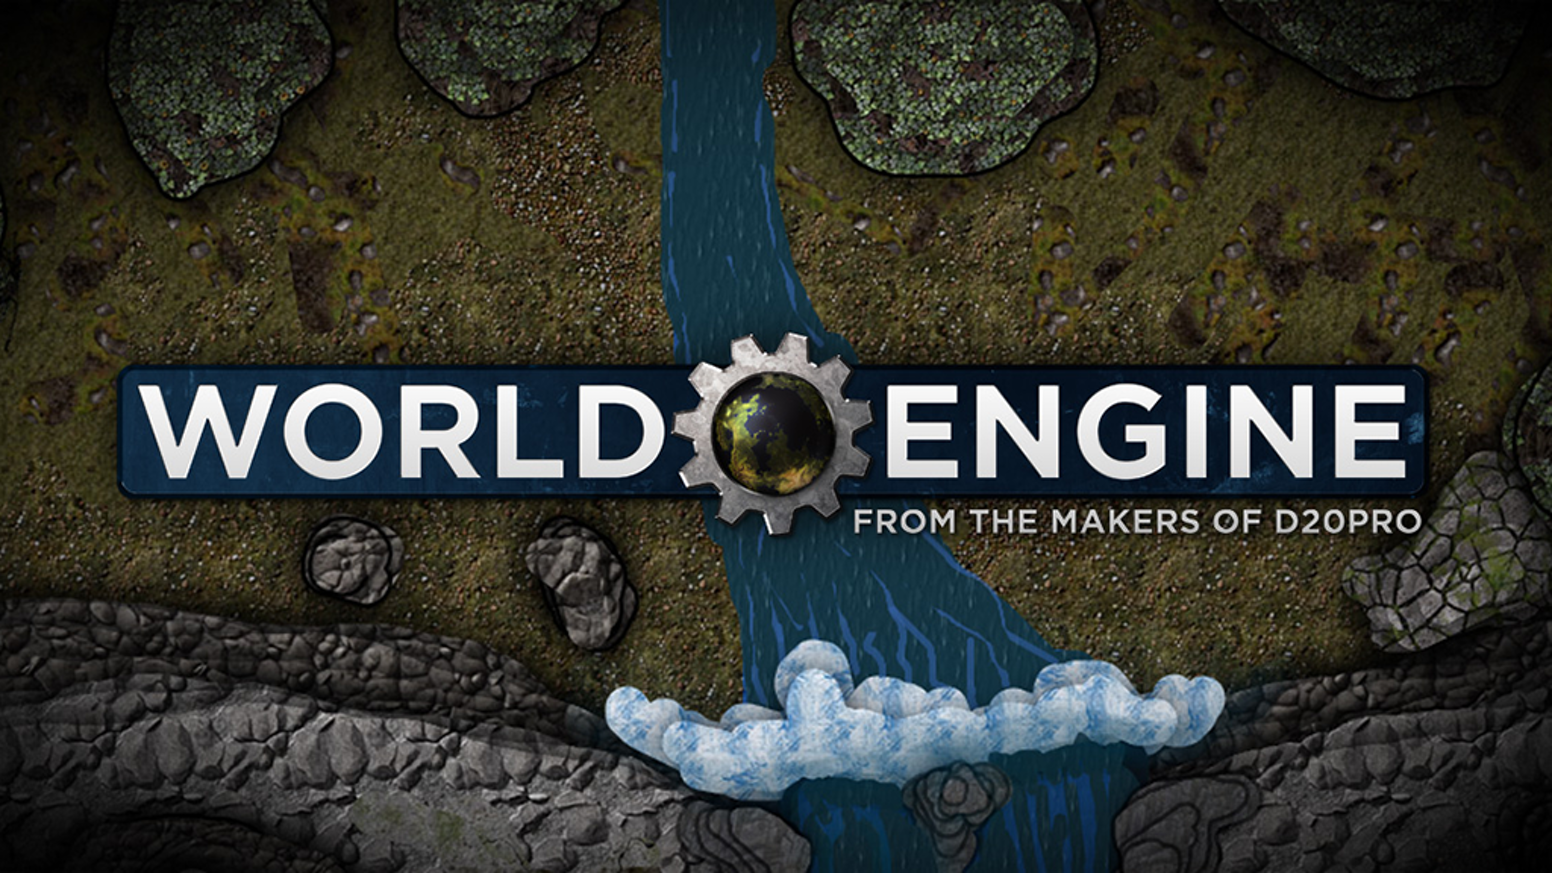 World engine an online map making tool for tabletop rpgs by mesa world engine is an easy to use web based map gumiabroncs Choice Image